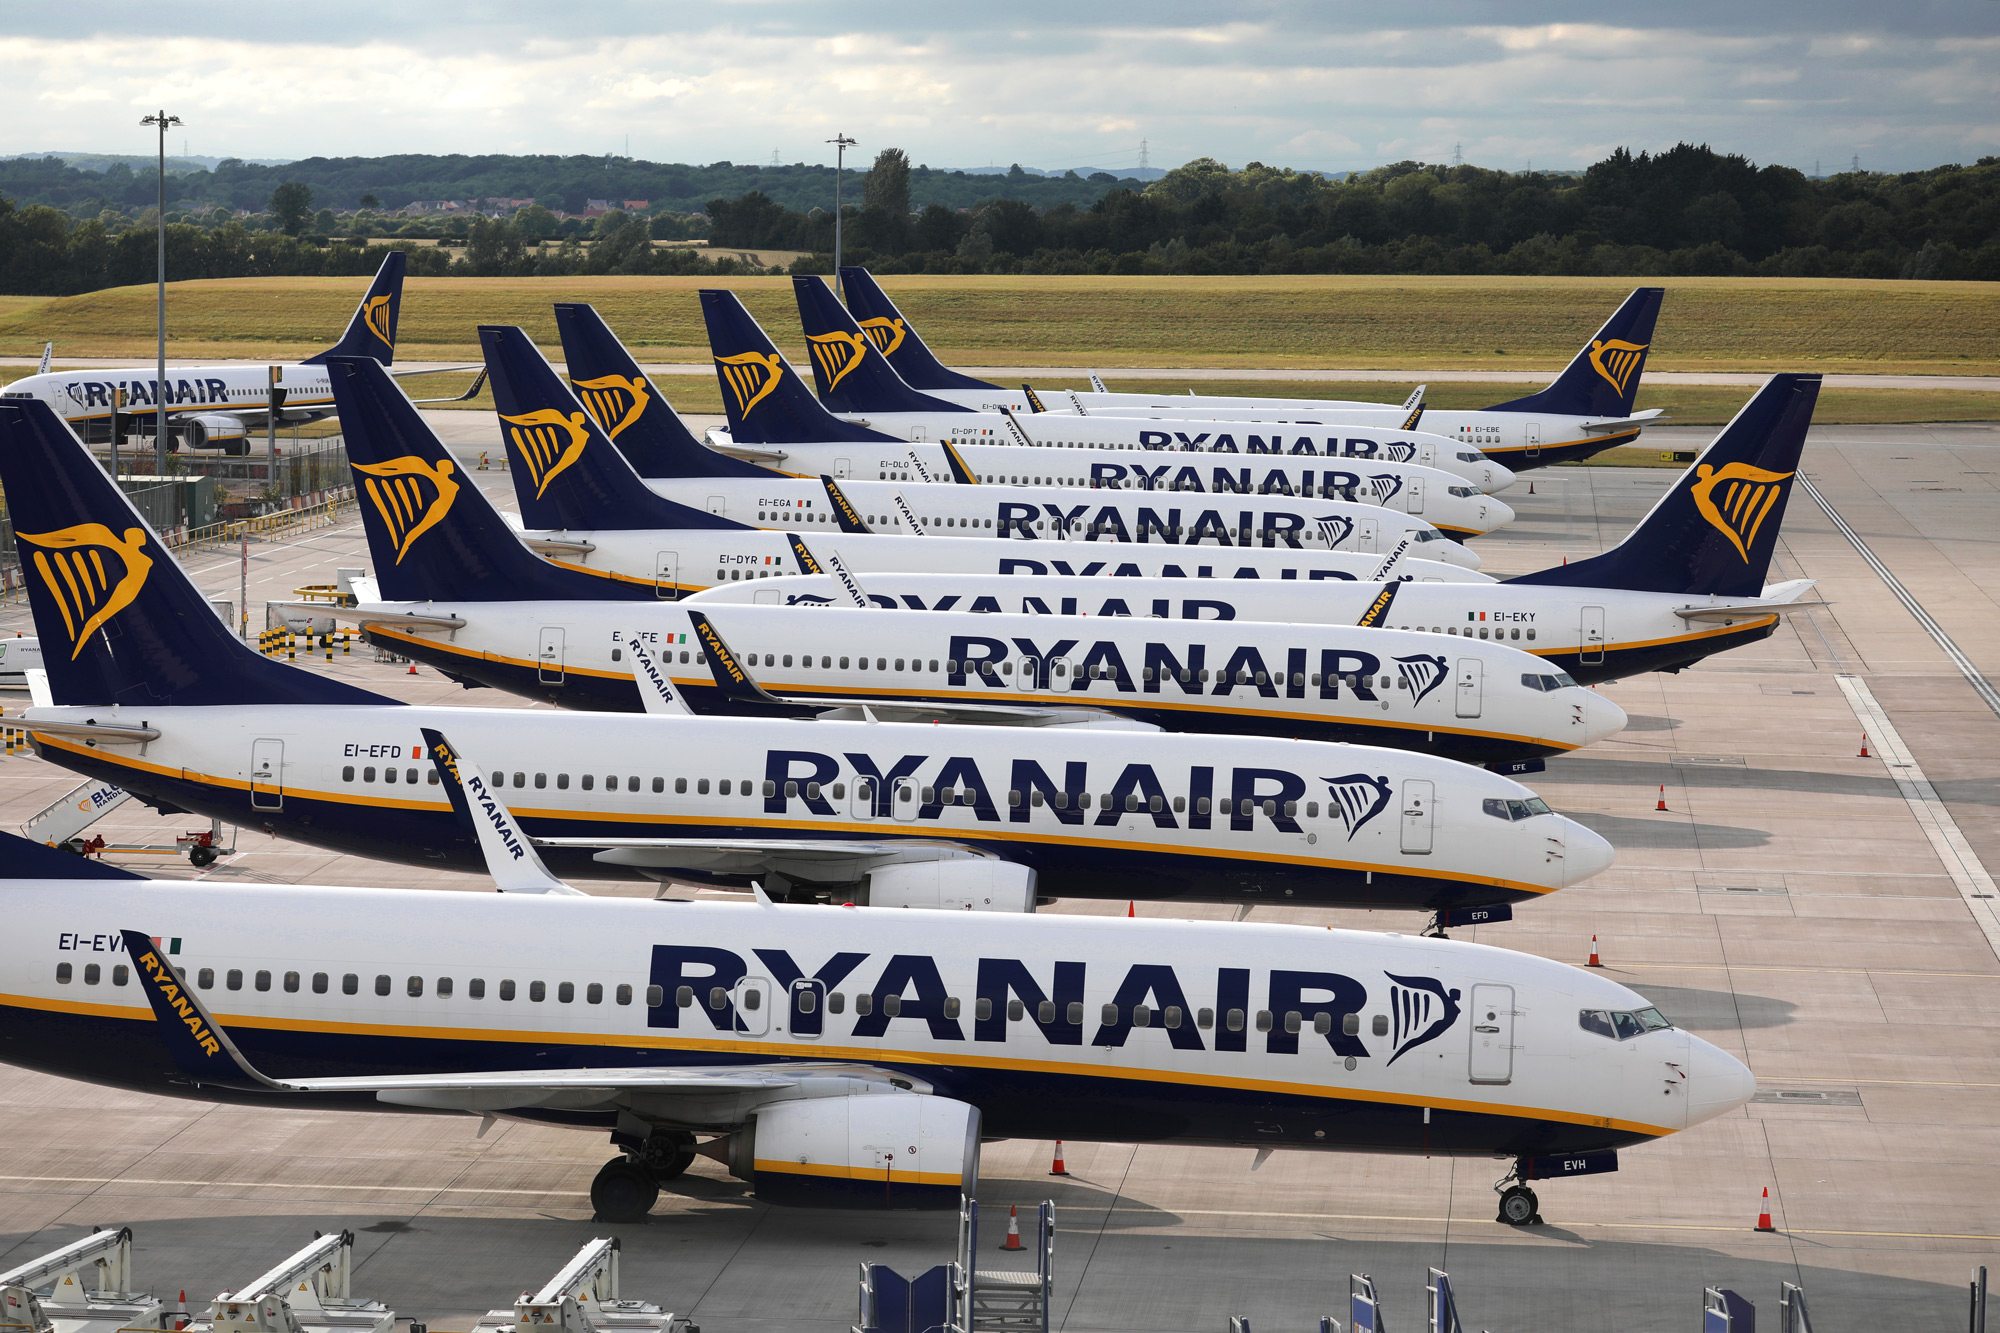 Ryanair planes are parked in a stand at Stansted Airport on June 30 in Stansted, United Kingdom.